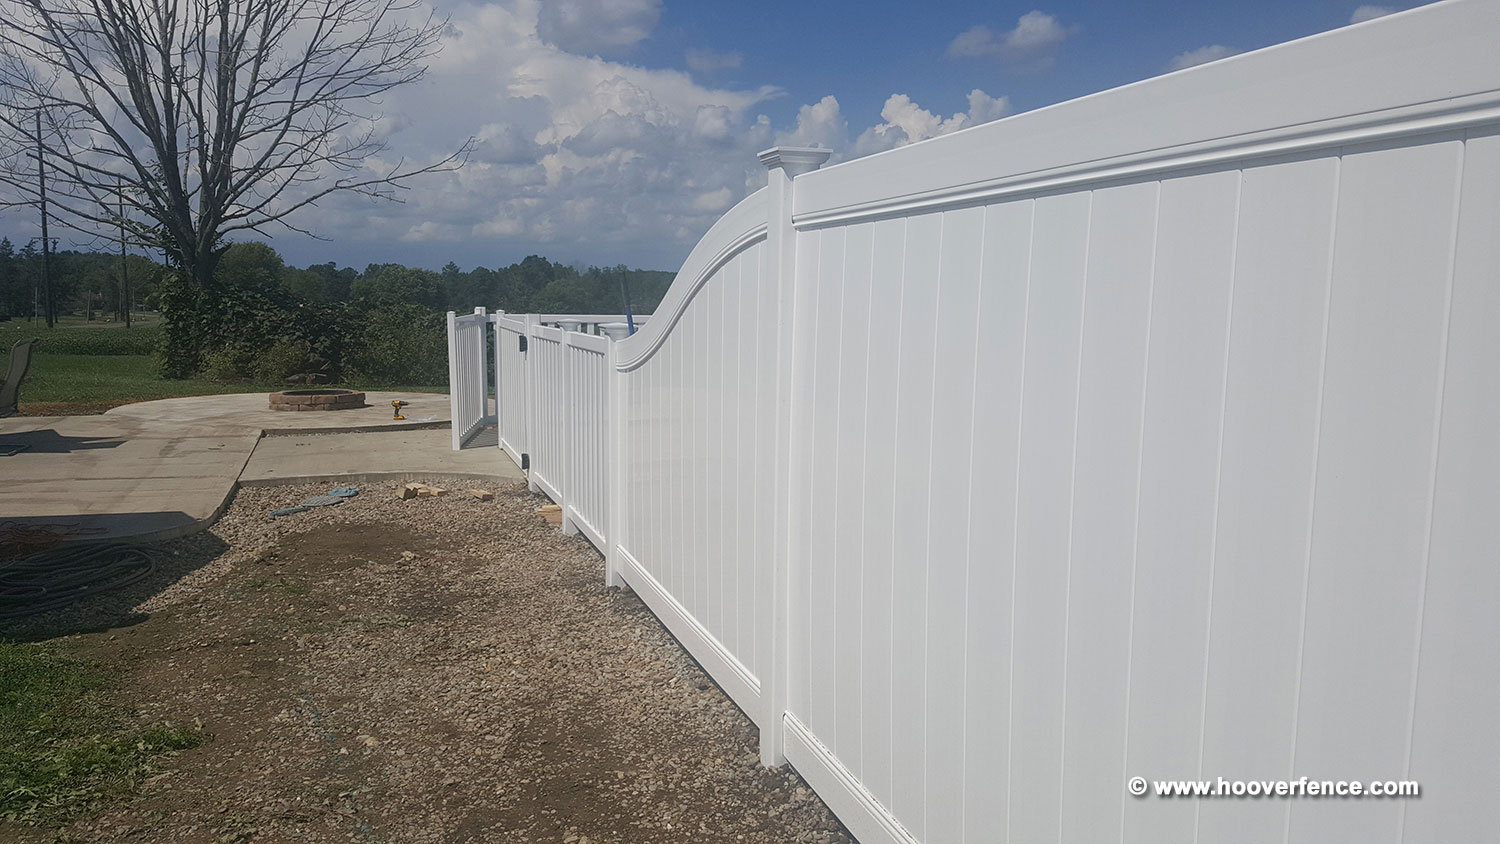 Bufftech Chesterfield Vinyl Fence Sections Hoover Co Gate For Transitional Putting Up Electric And Baron Installation By Southington Oh